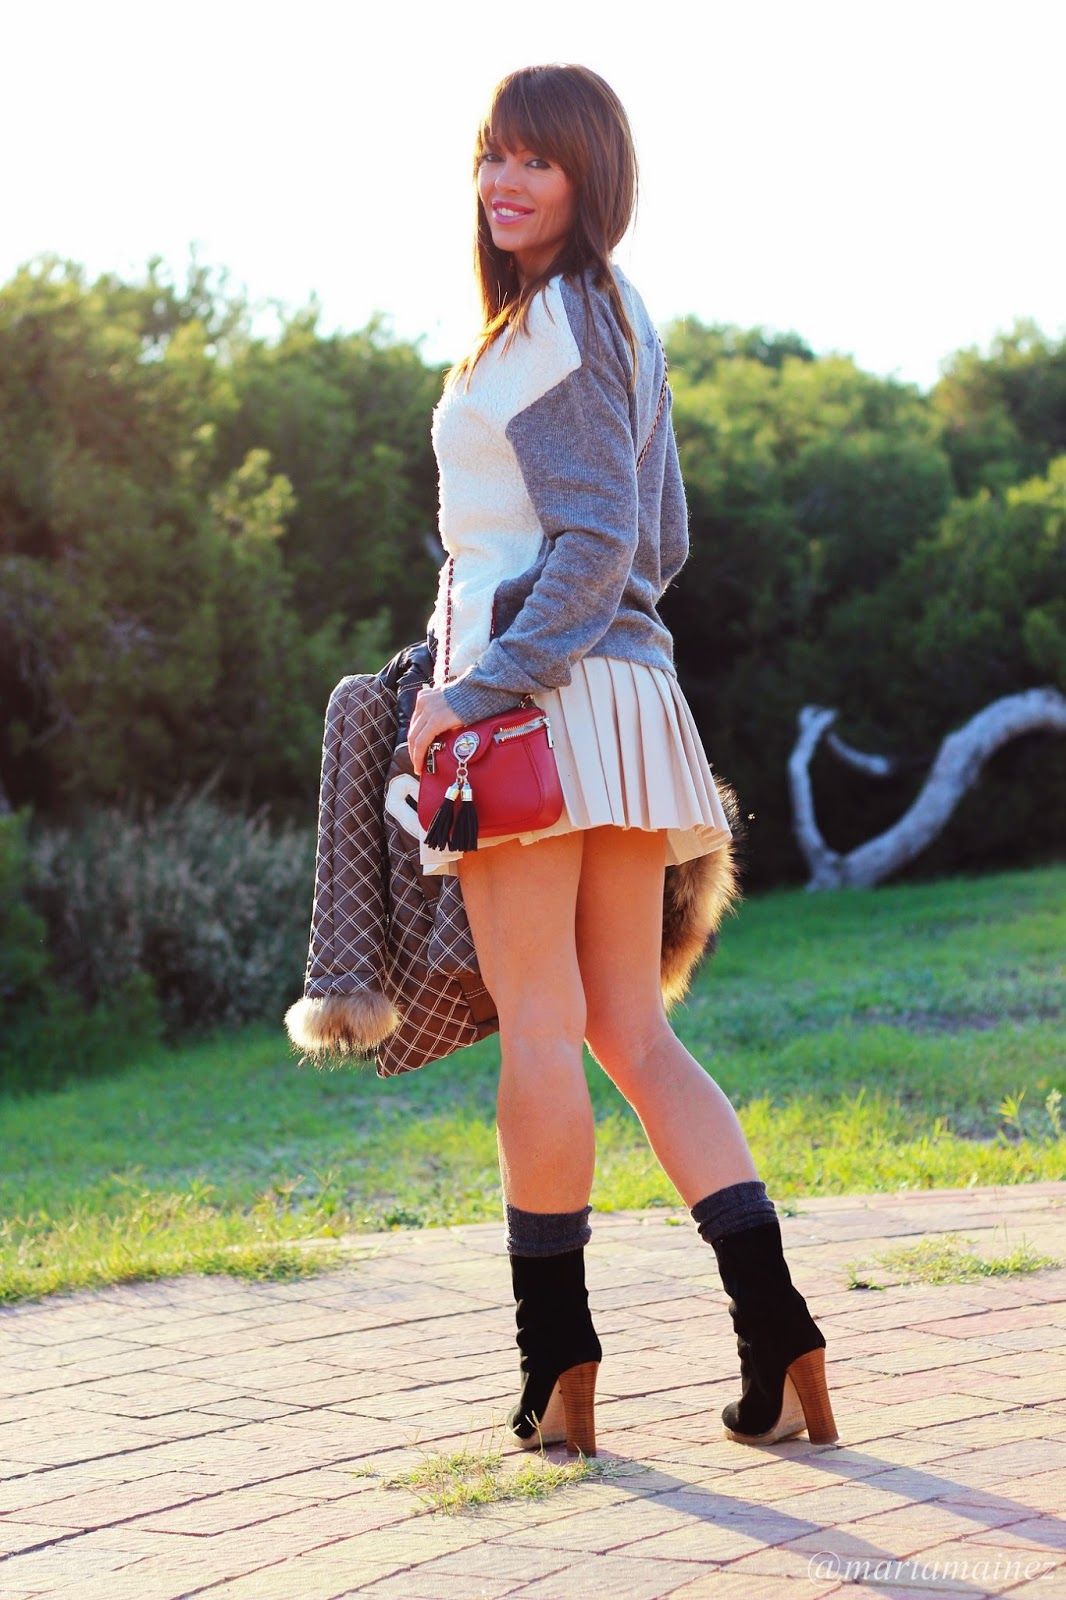 H.Preppy - School days collection - Blogger Alicante- Baltarini Shoes - Outfit Autum 2014